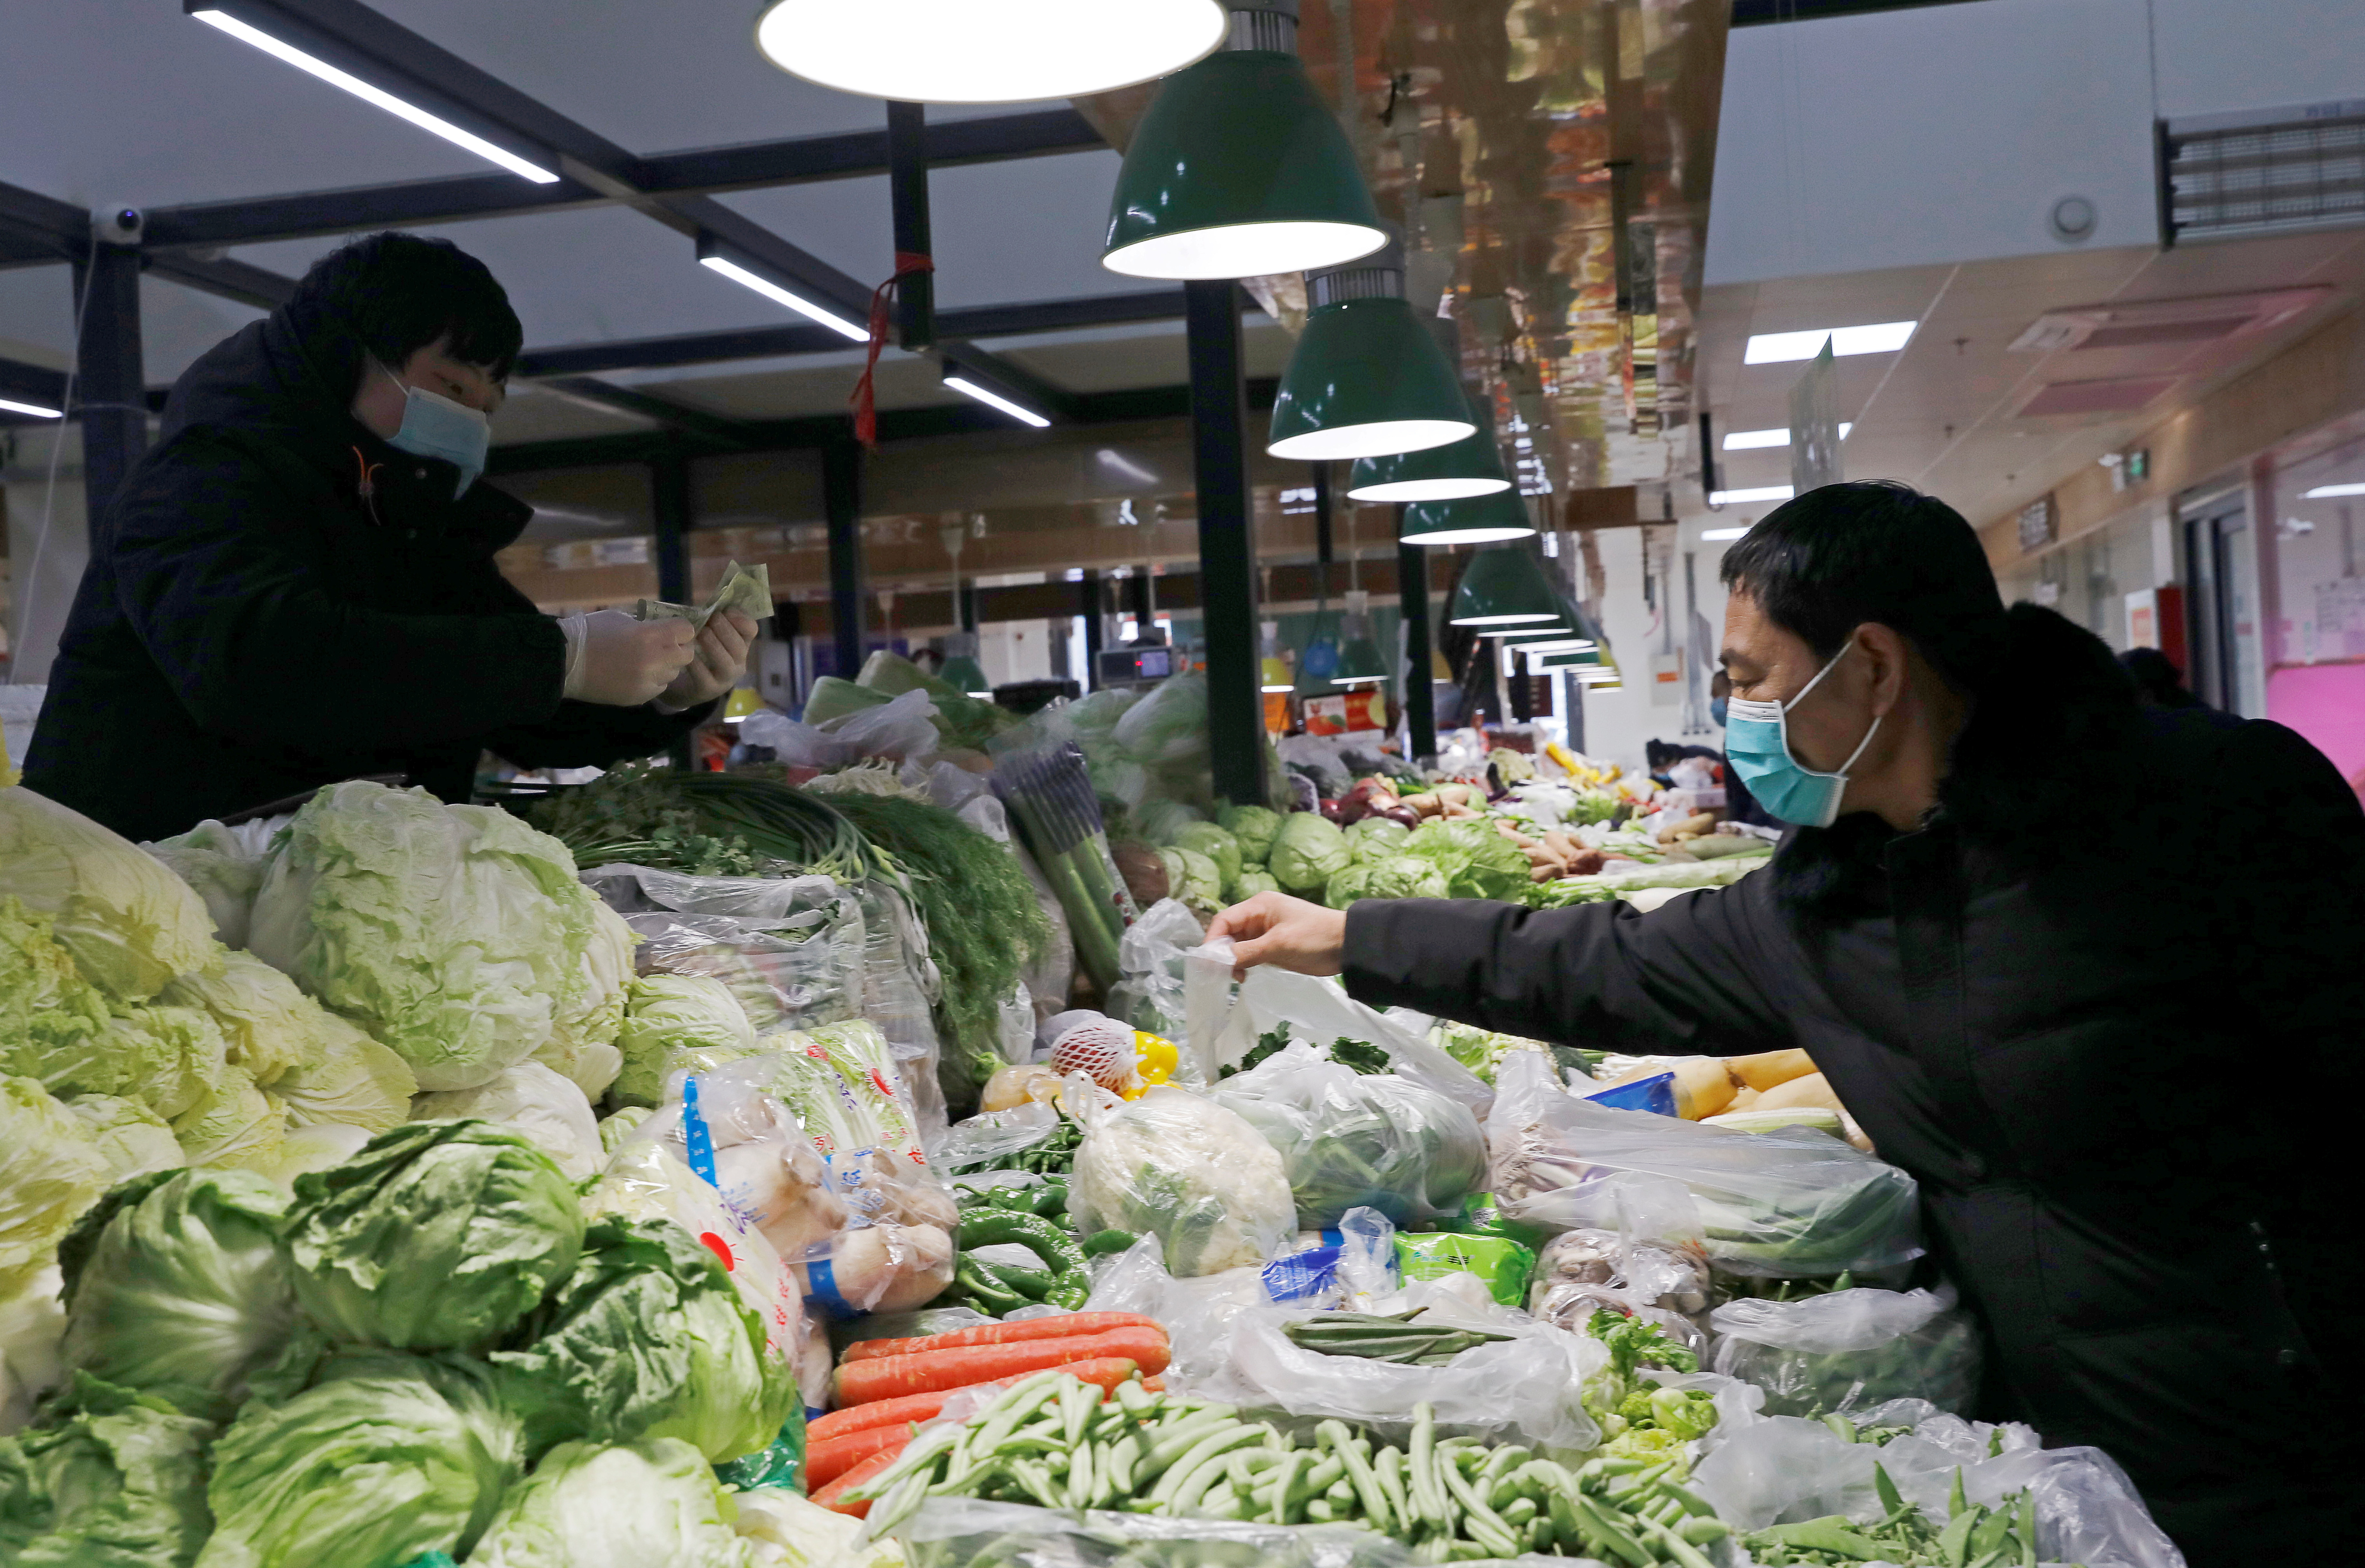 People wearing face masks shop at a market, following new cases of the coronavirus disease (COVID-19) in the country, in Beijing, China January 11, 2021. REUTERS/Tingshu Wang